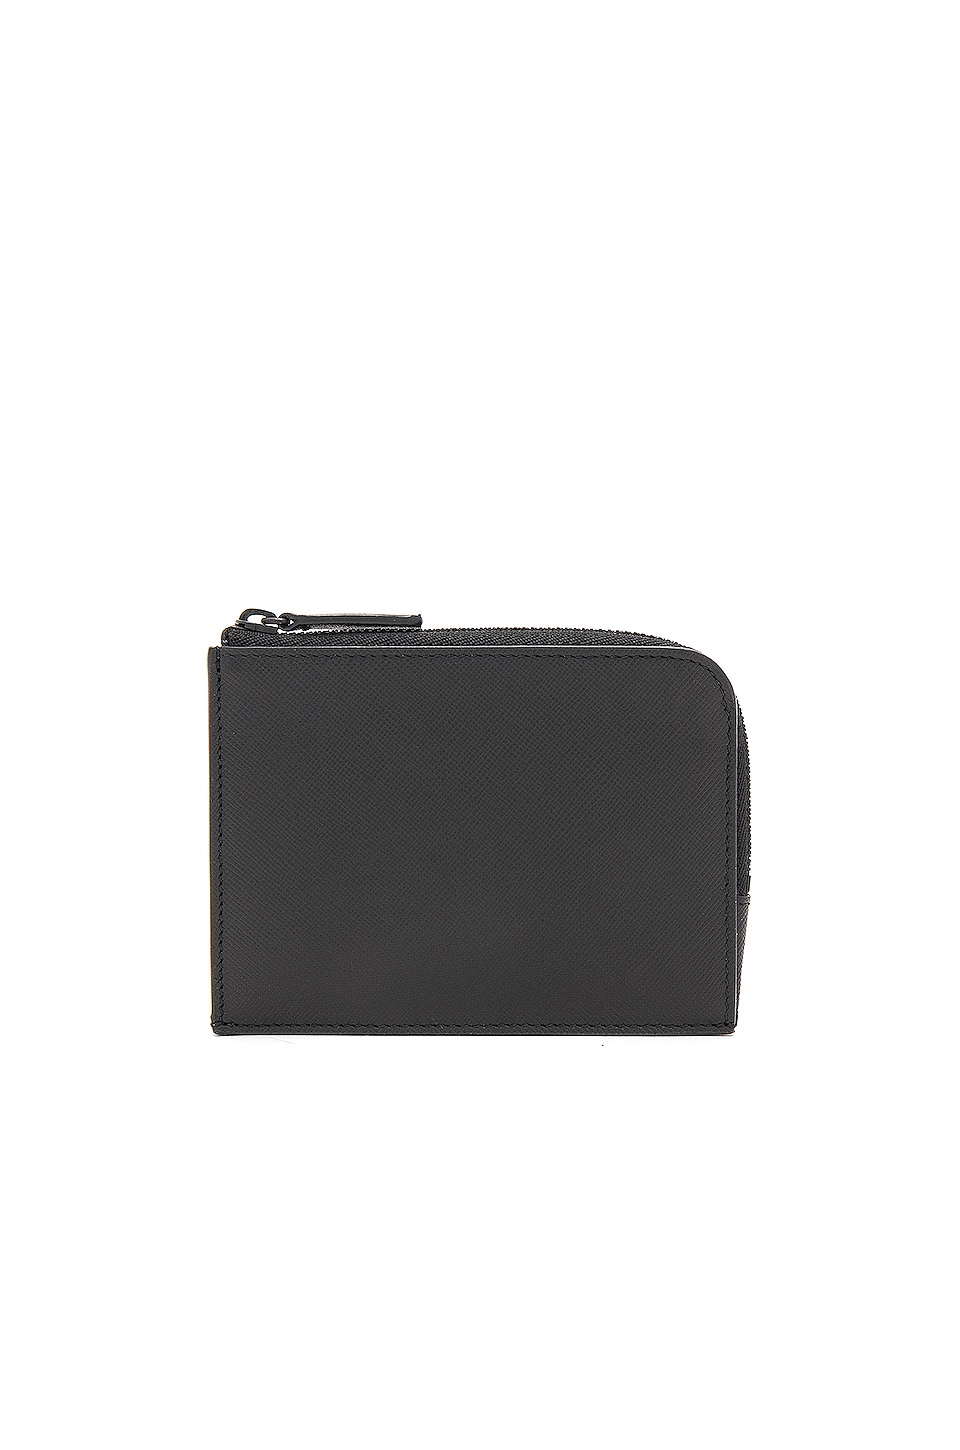 Common Projects Saffiano Leather Zipper Wallet in Black